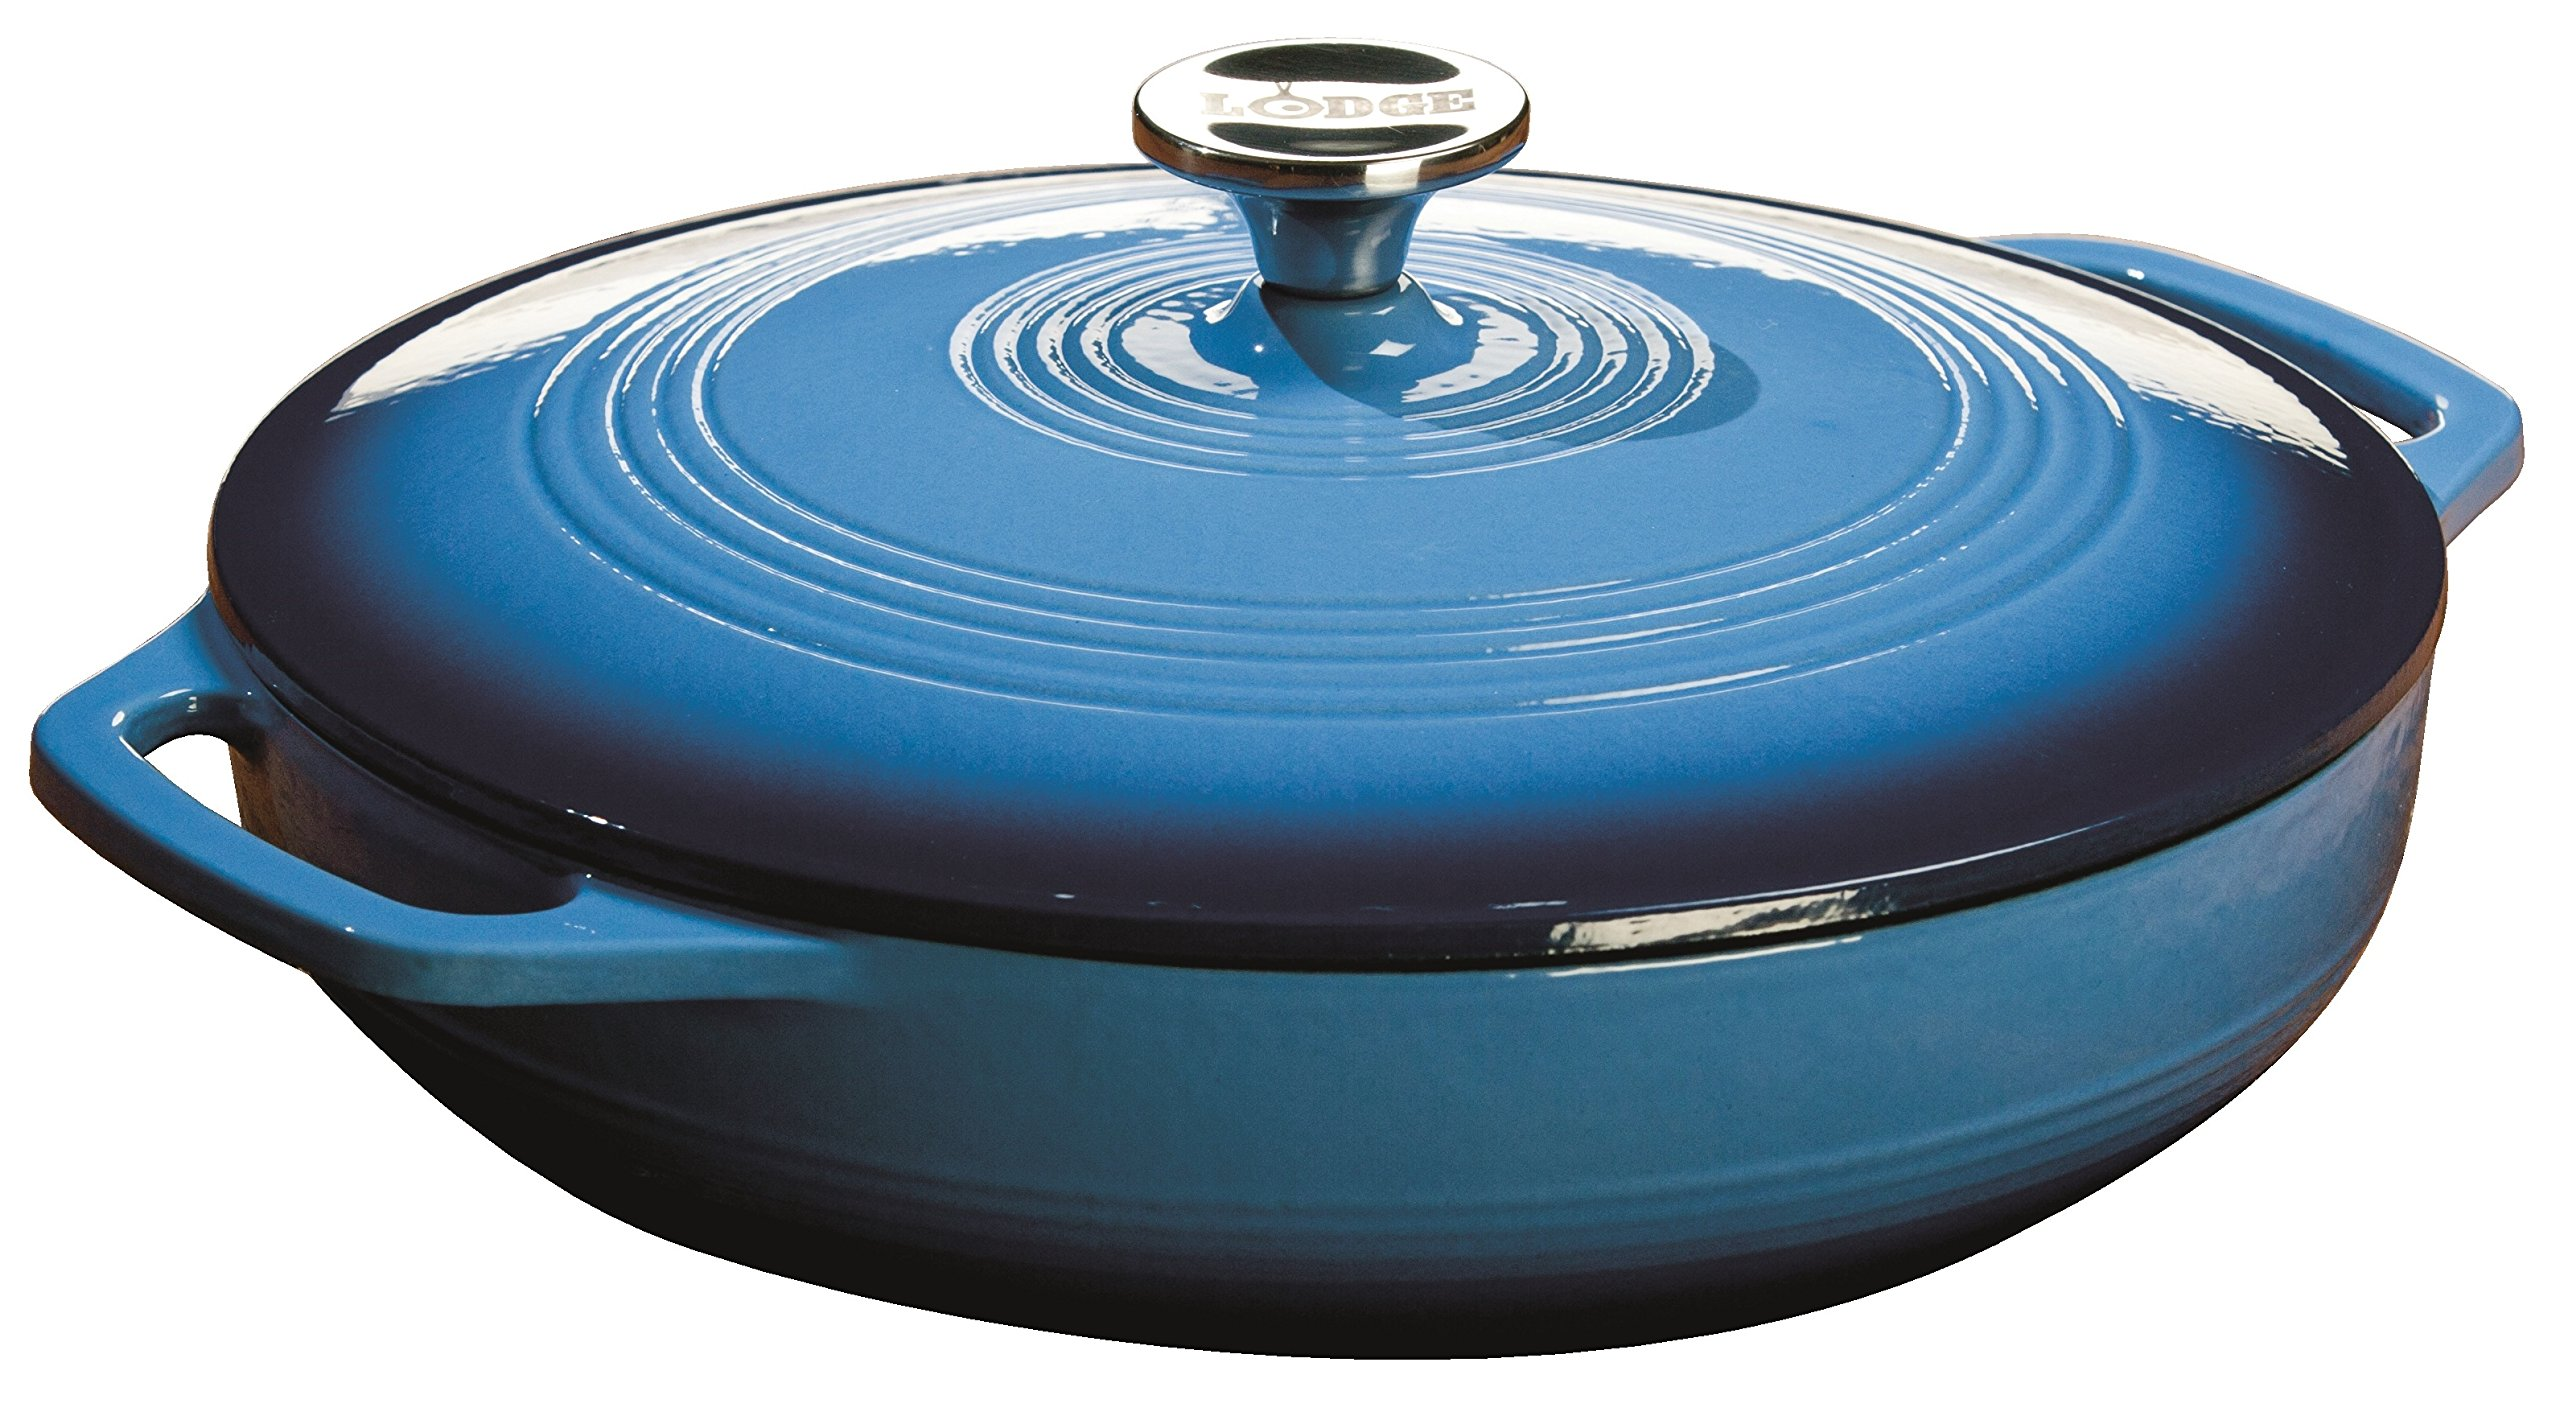 Lodge 3.6 Quart Enamel Cast Iron Casserole Dish with Lid (Carribbean Blue) by Lodge (Image #1)